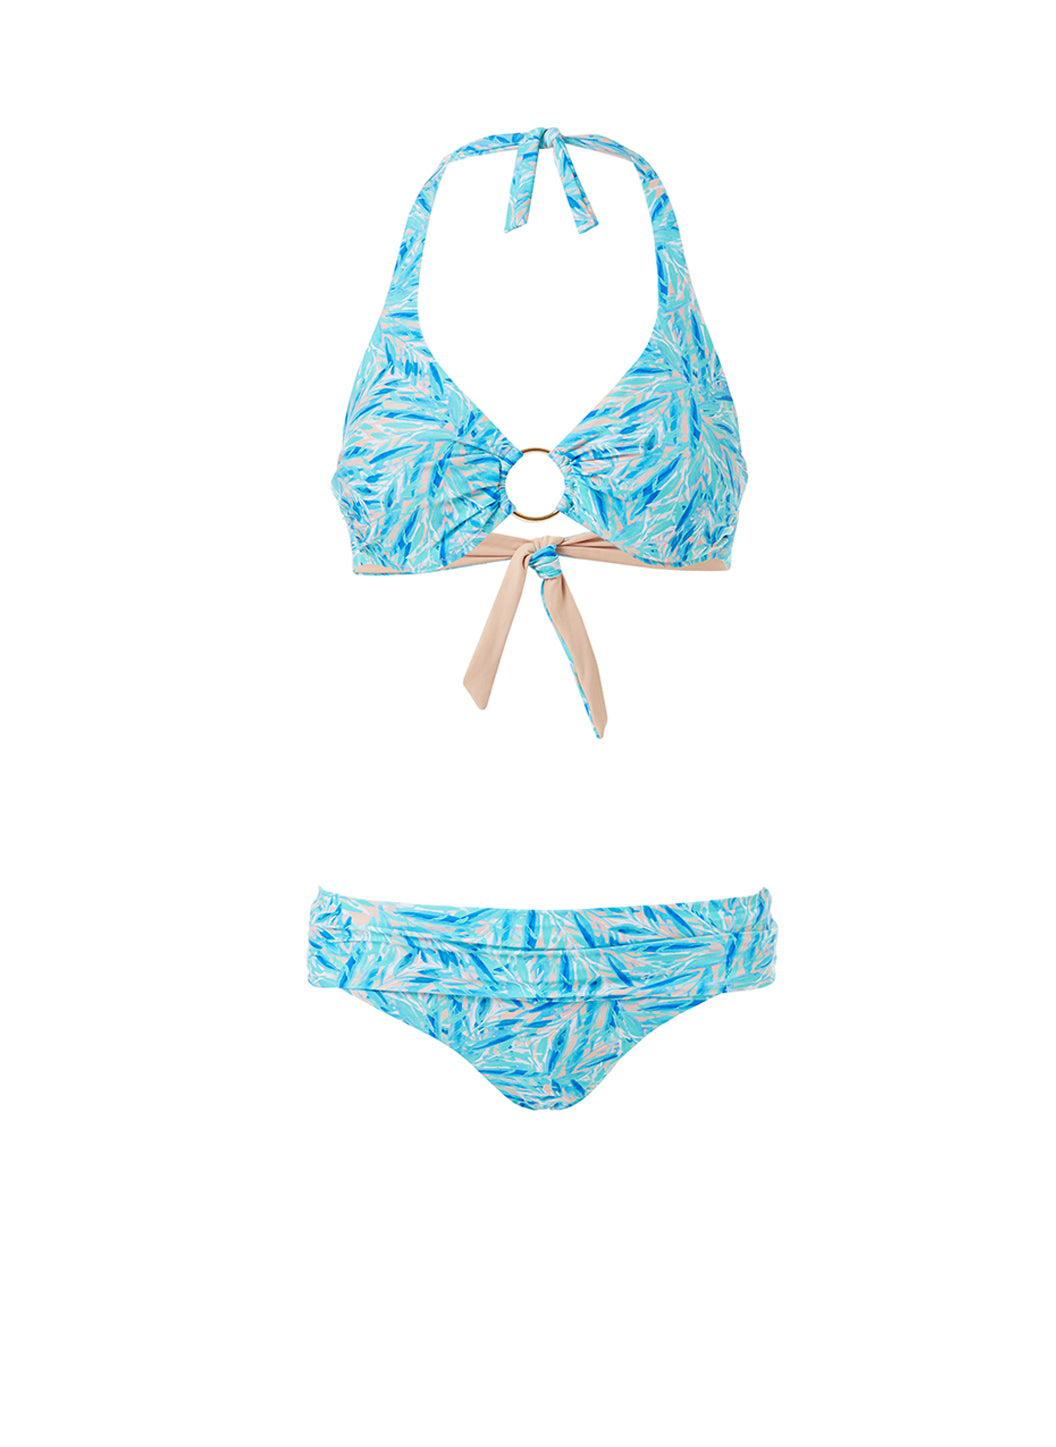 Brussels Blue Leaf Halterneck Ring Supportive Bikini - Melissa Odabash Swimwear